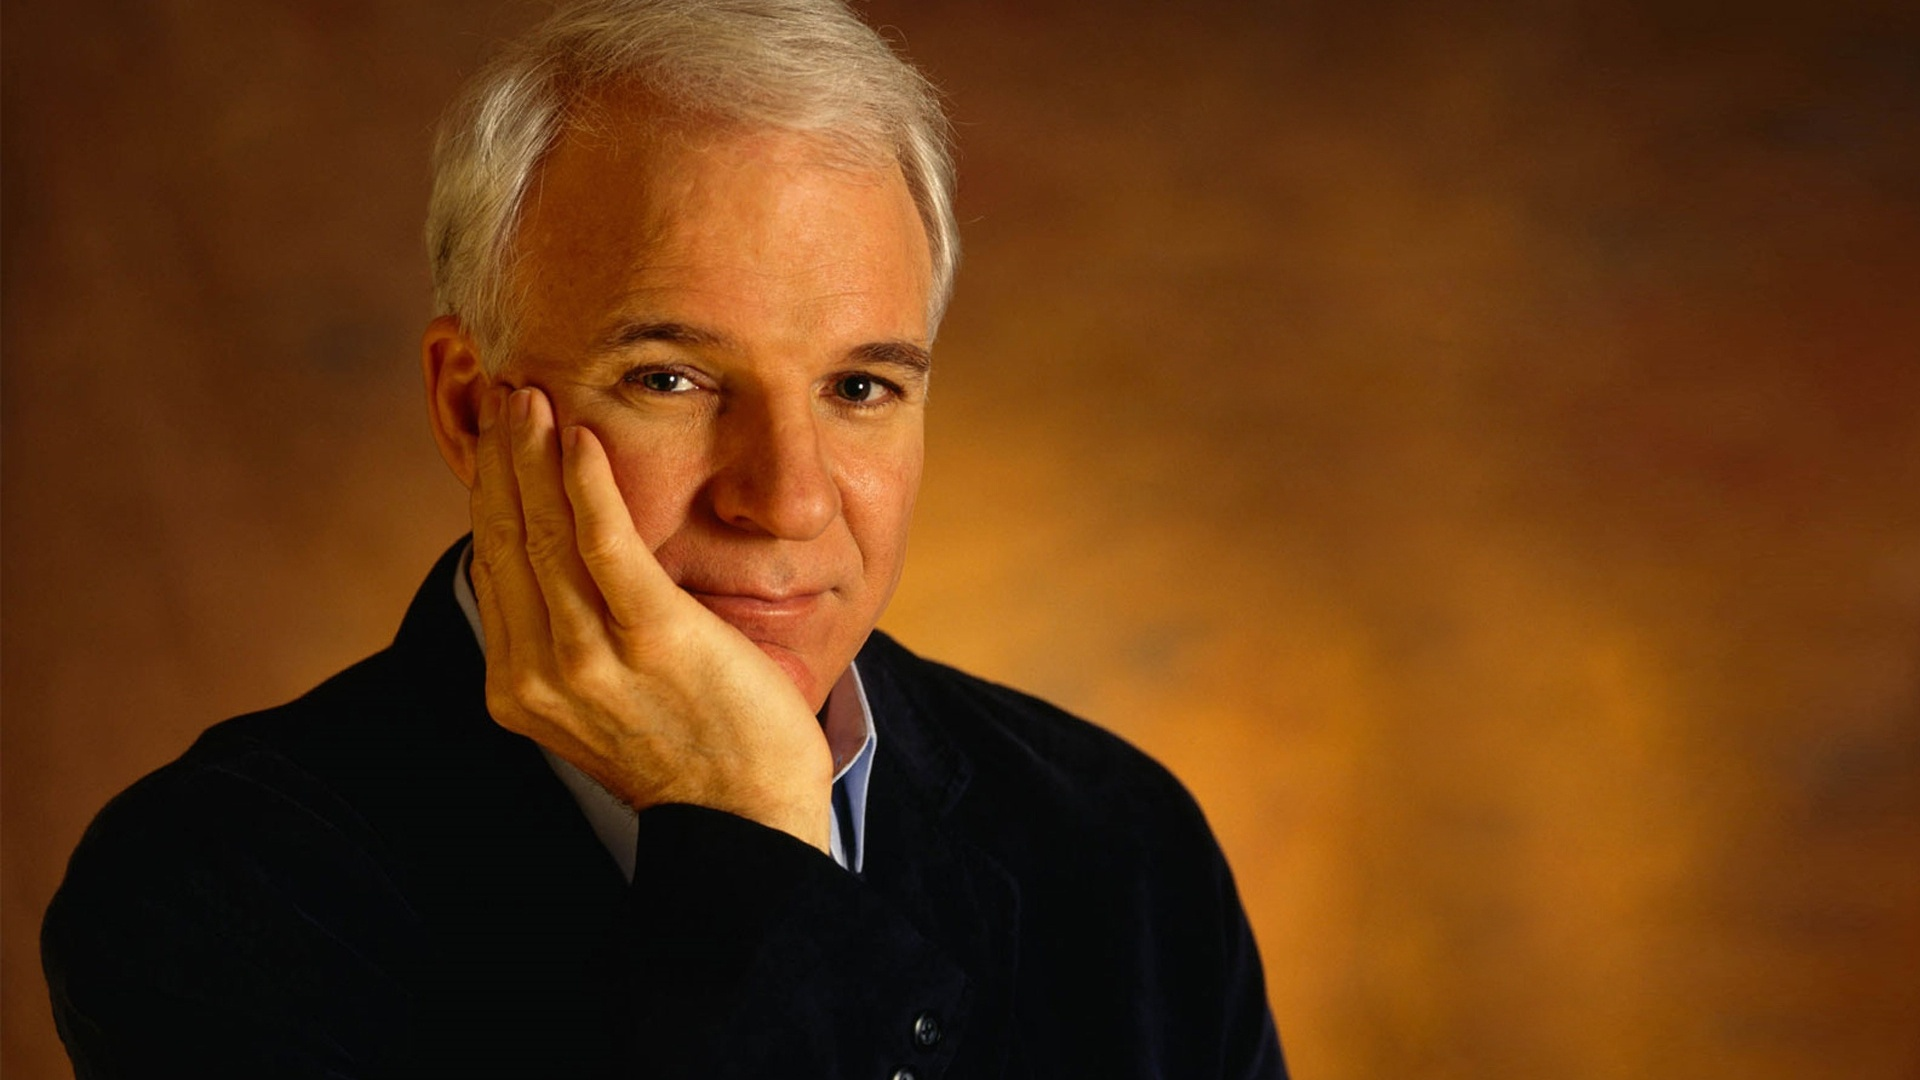 Steve Martin HD Wallpaper Wallpaper